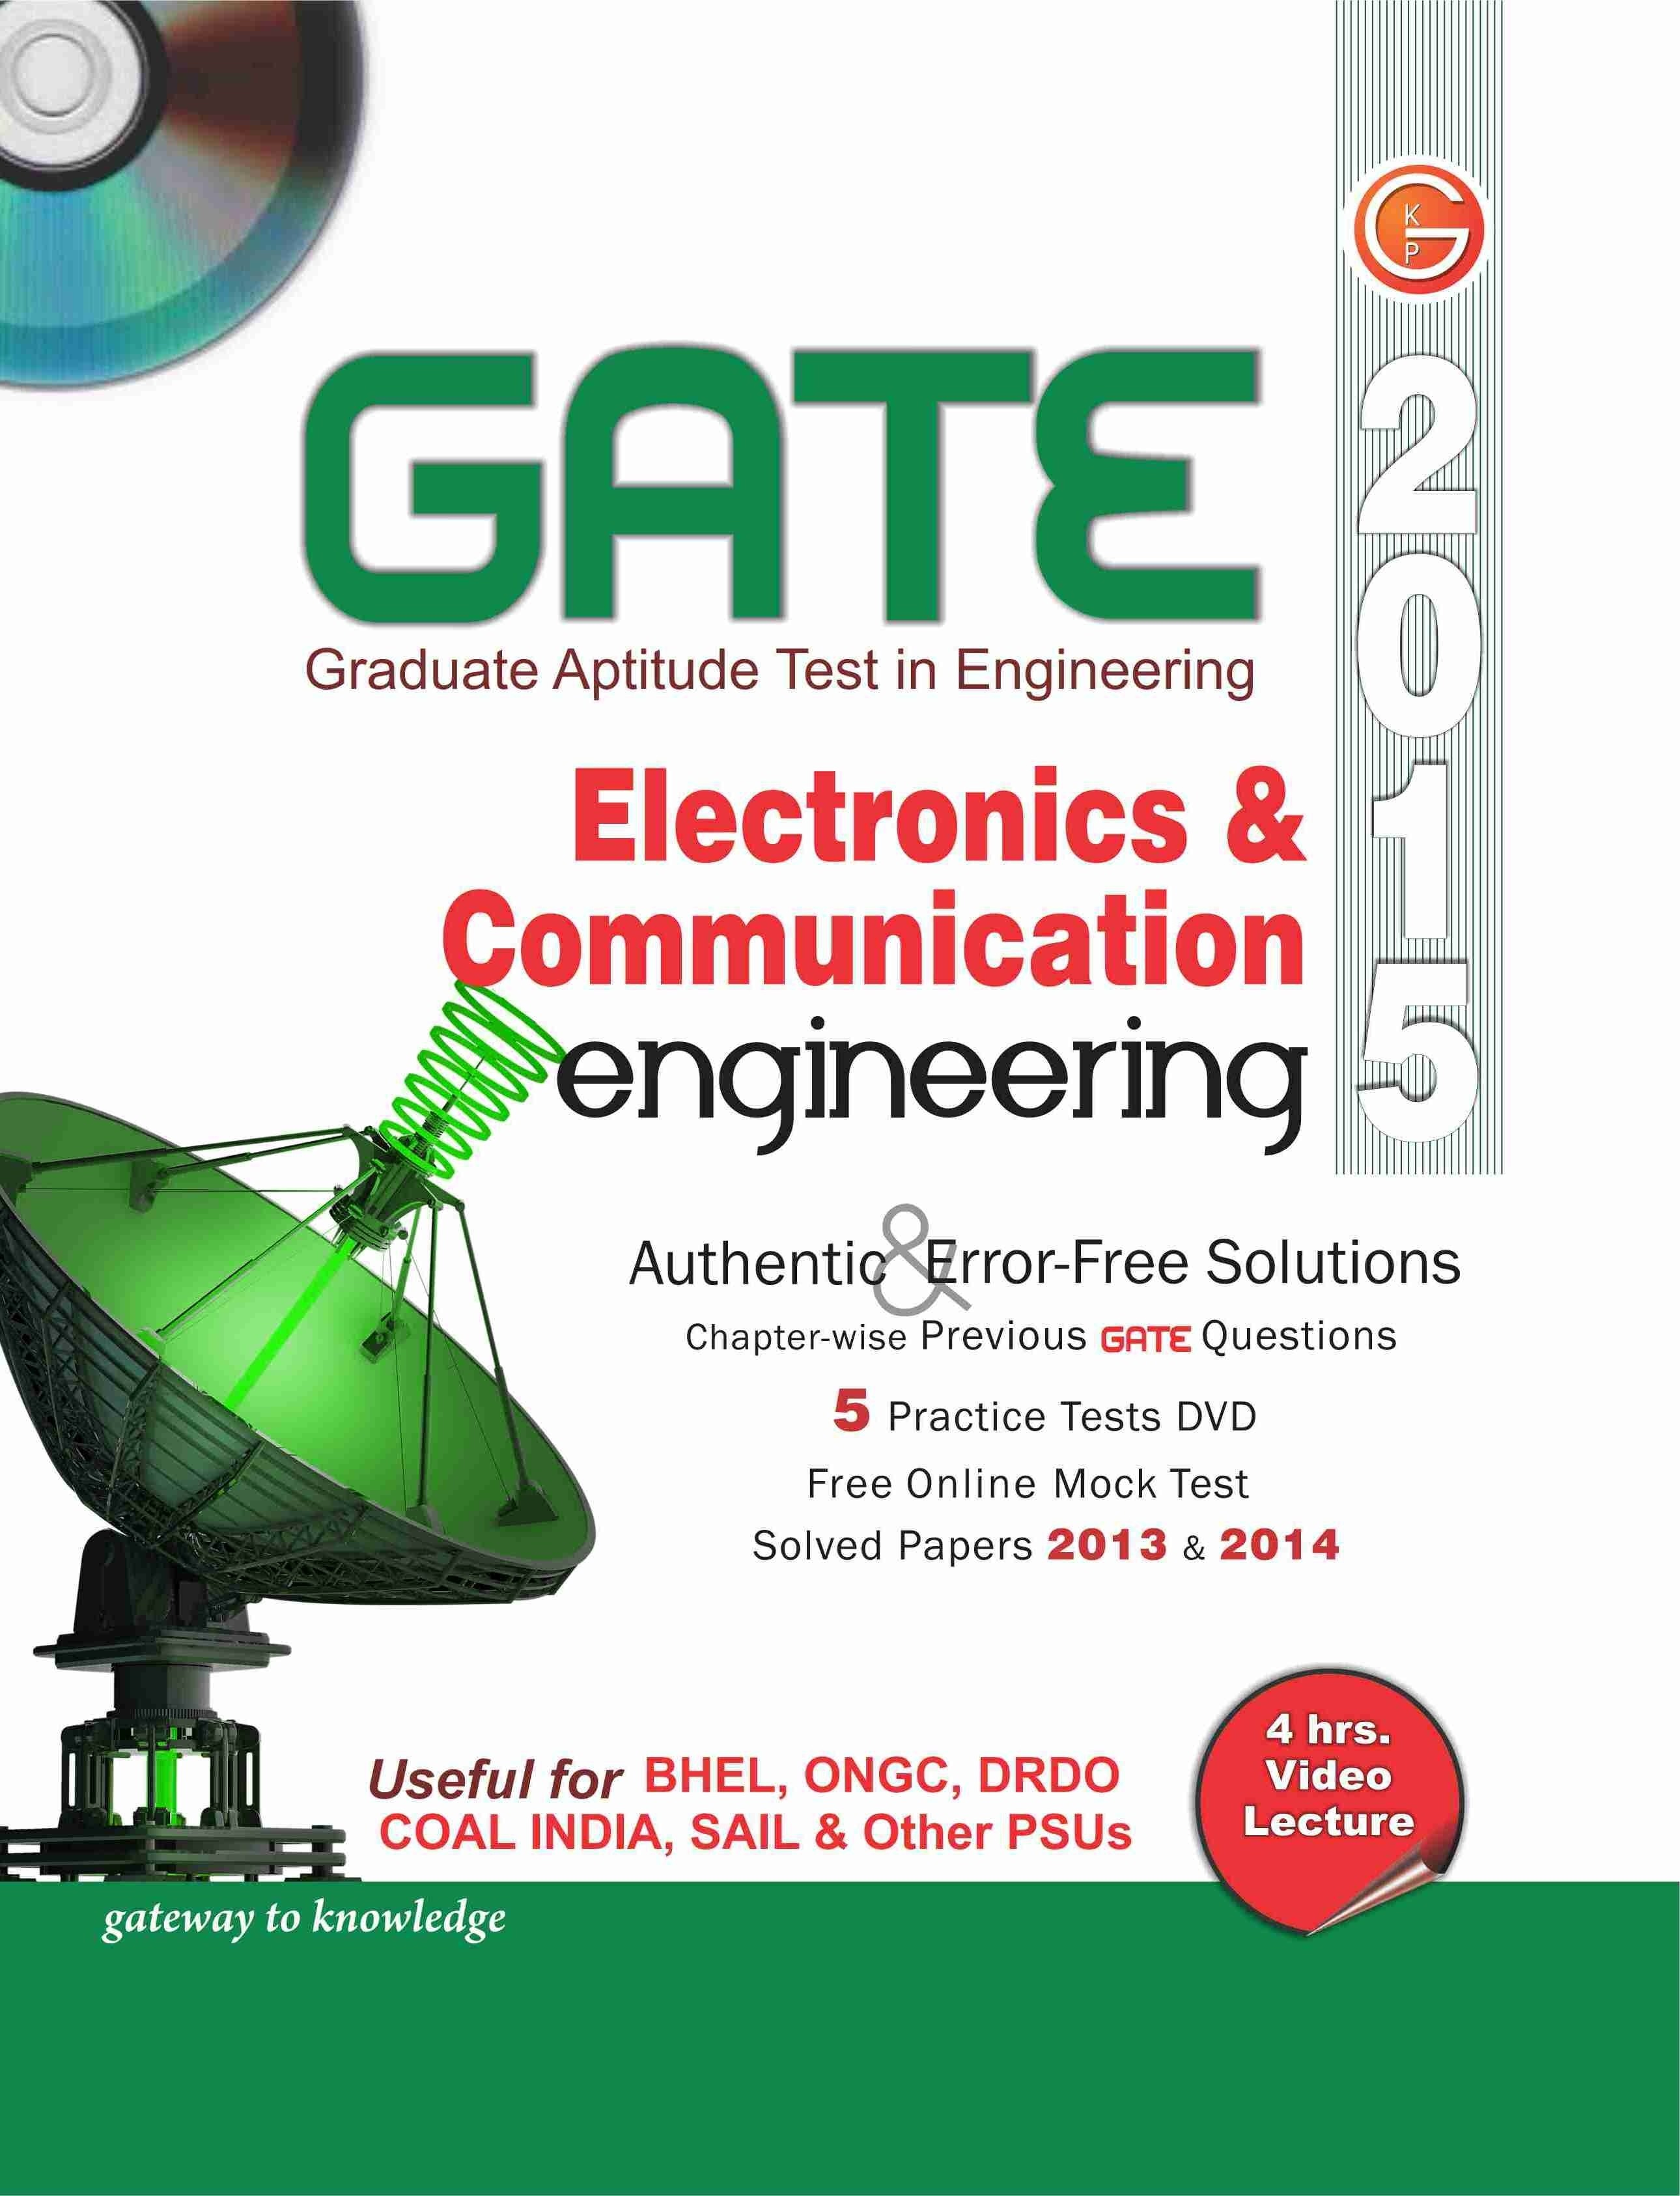 communication engineering Scheme and syllabi for third to eighth semesters of bachelor of technology in electronics and communication engineering from 2009 admission onwards.